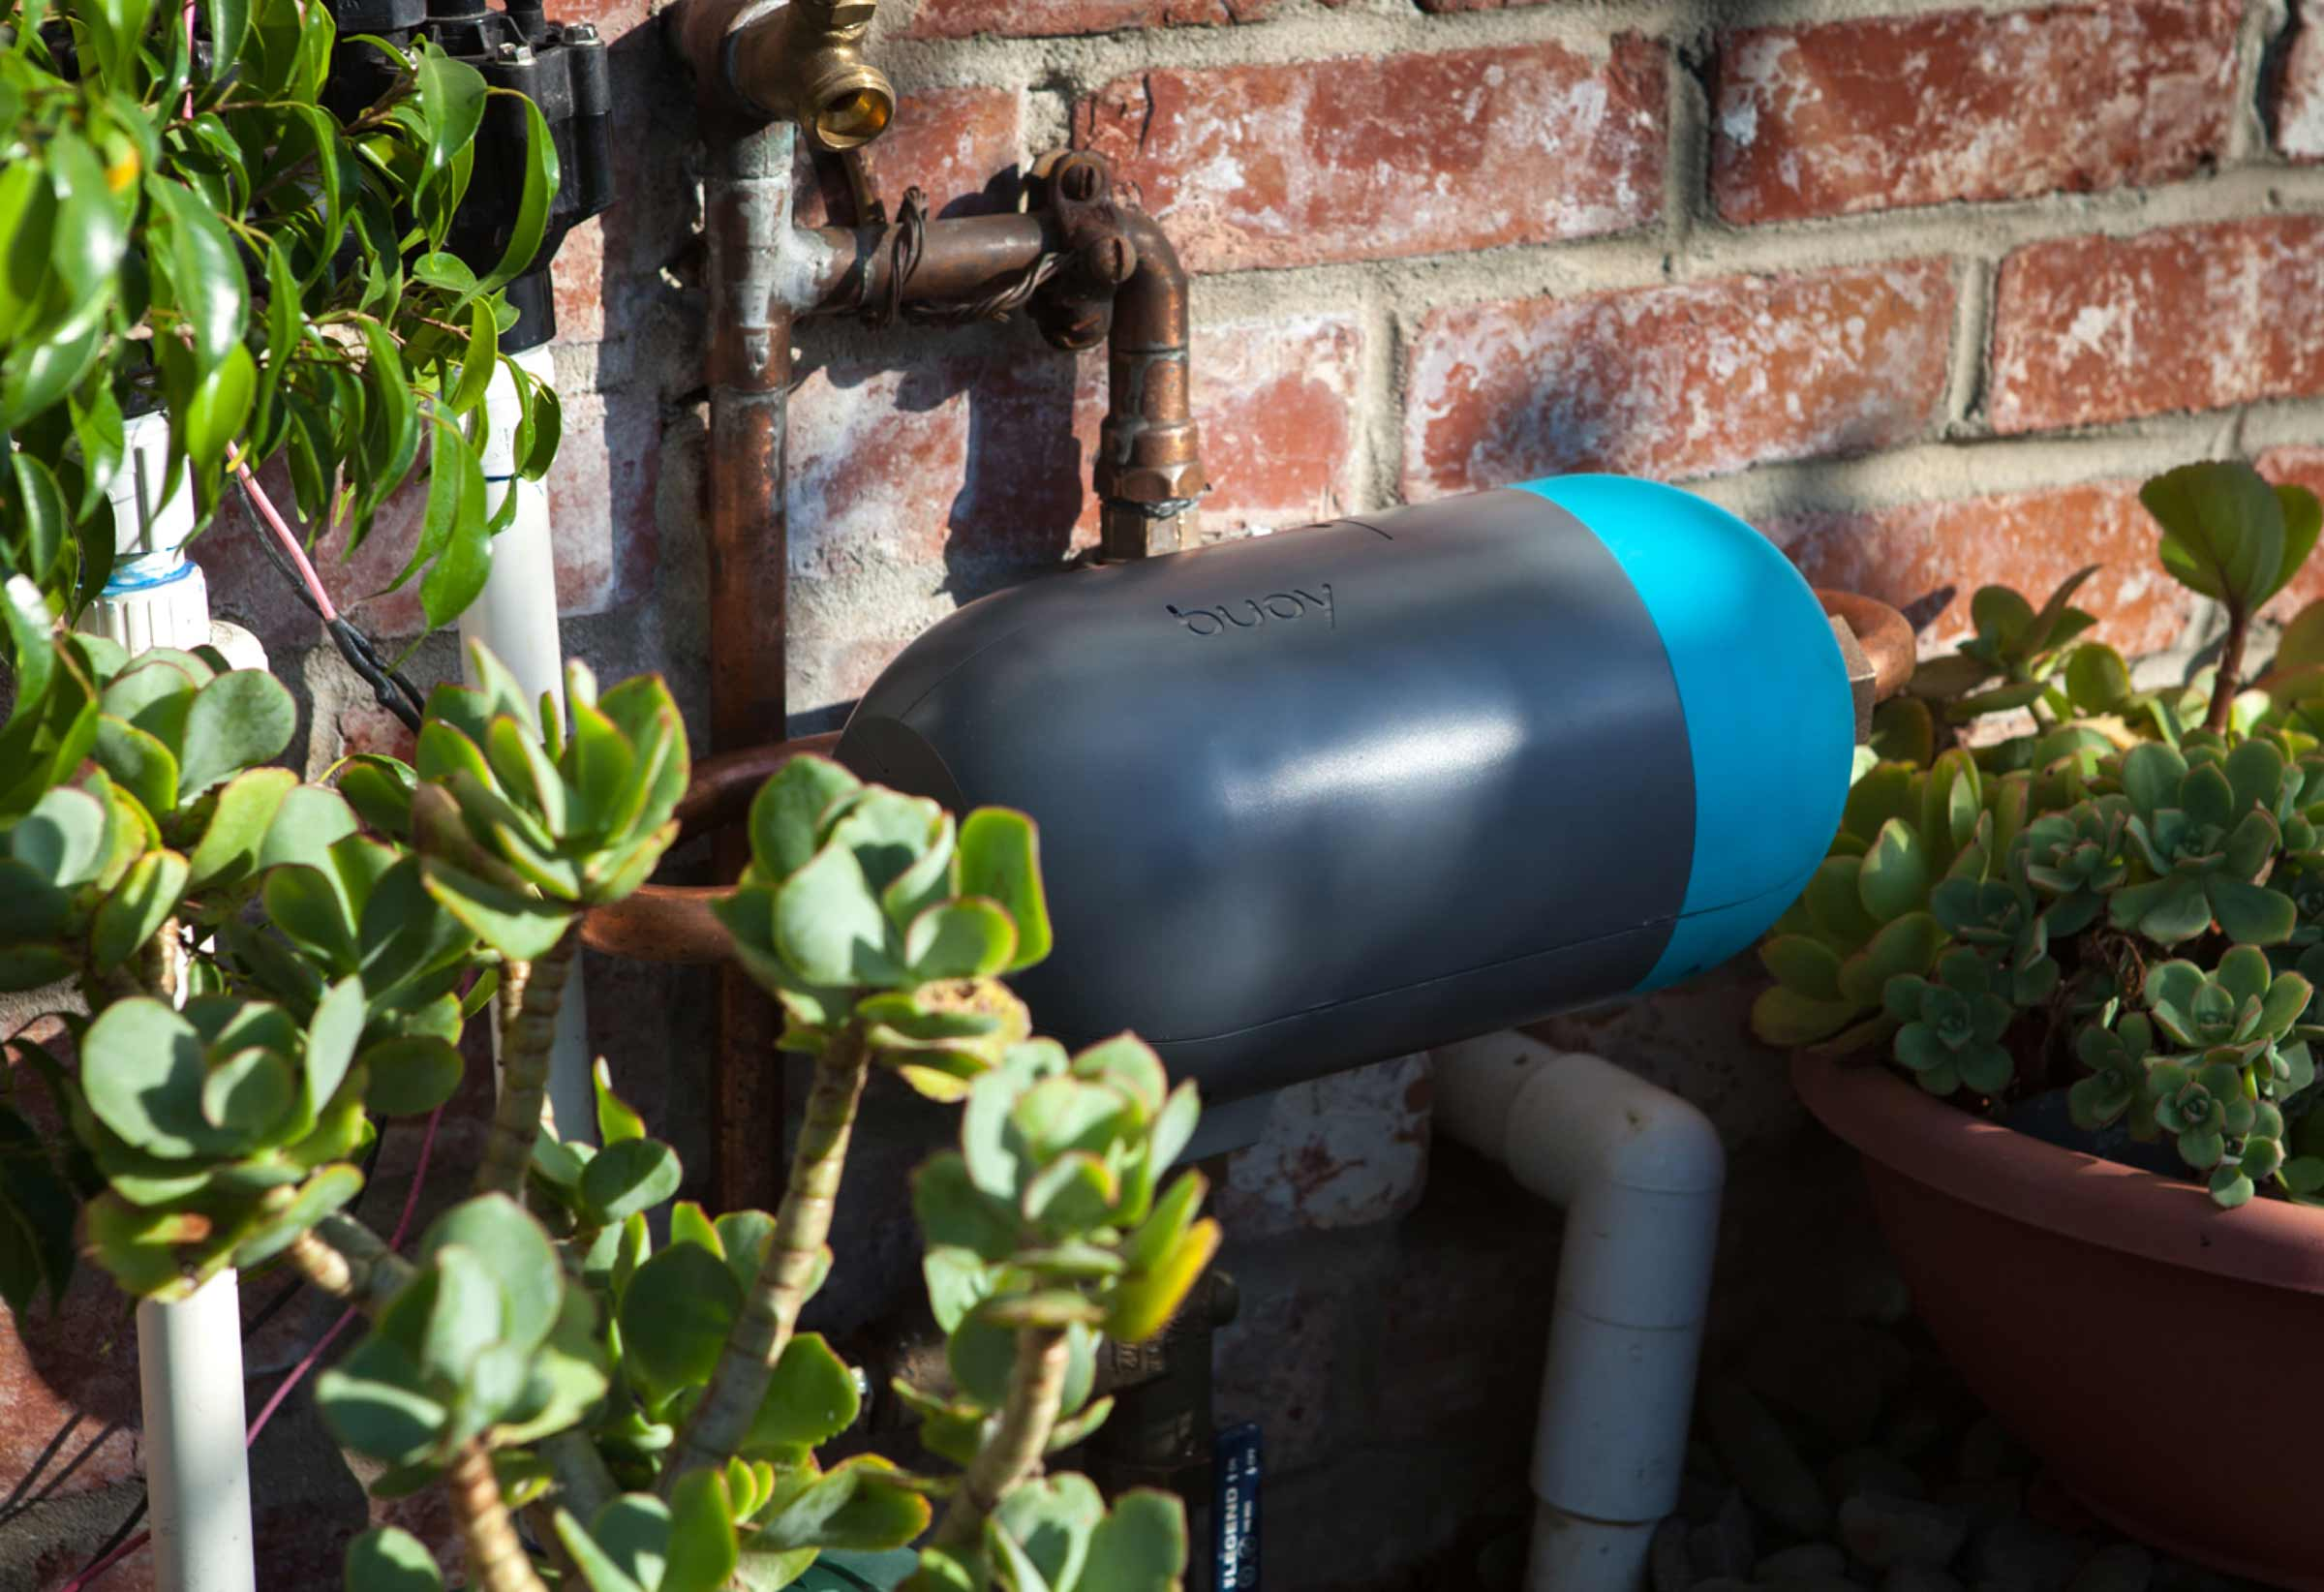 Buoy Whole Home Water Controller pictured installed